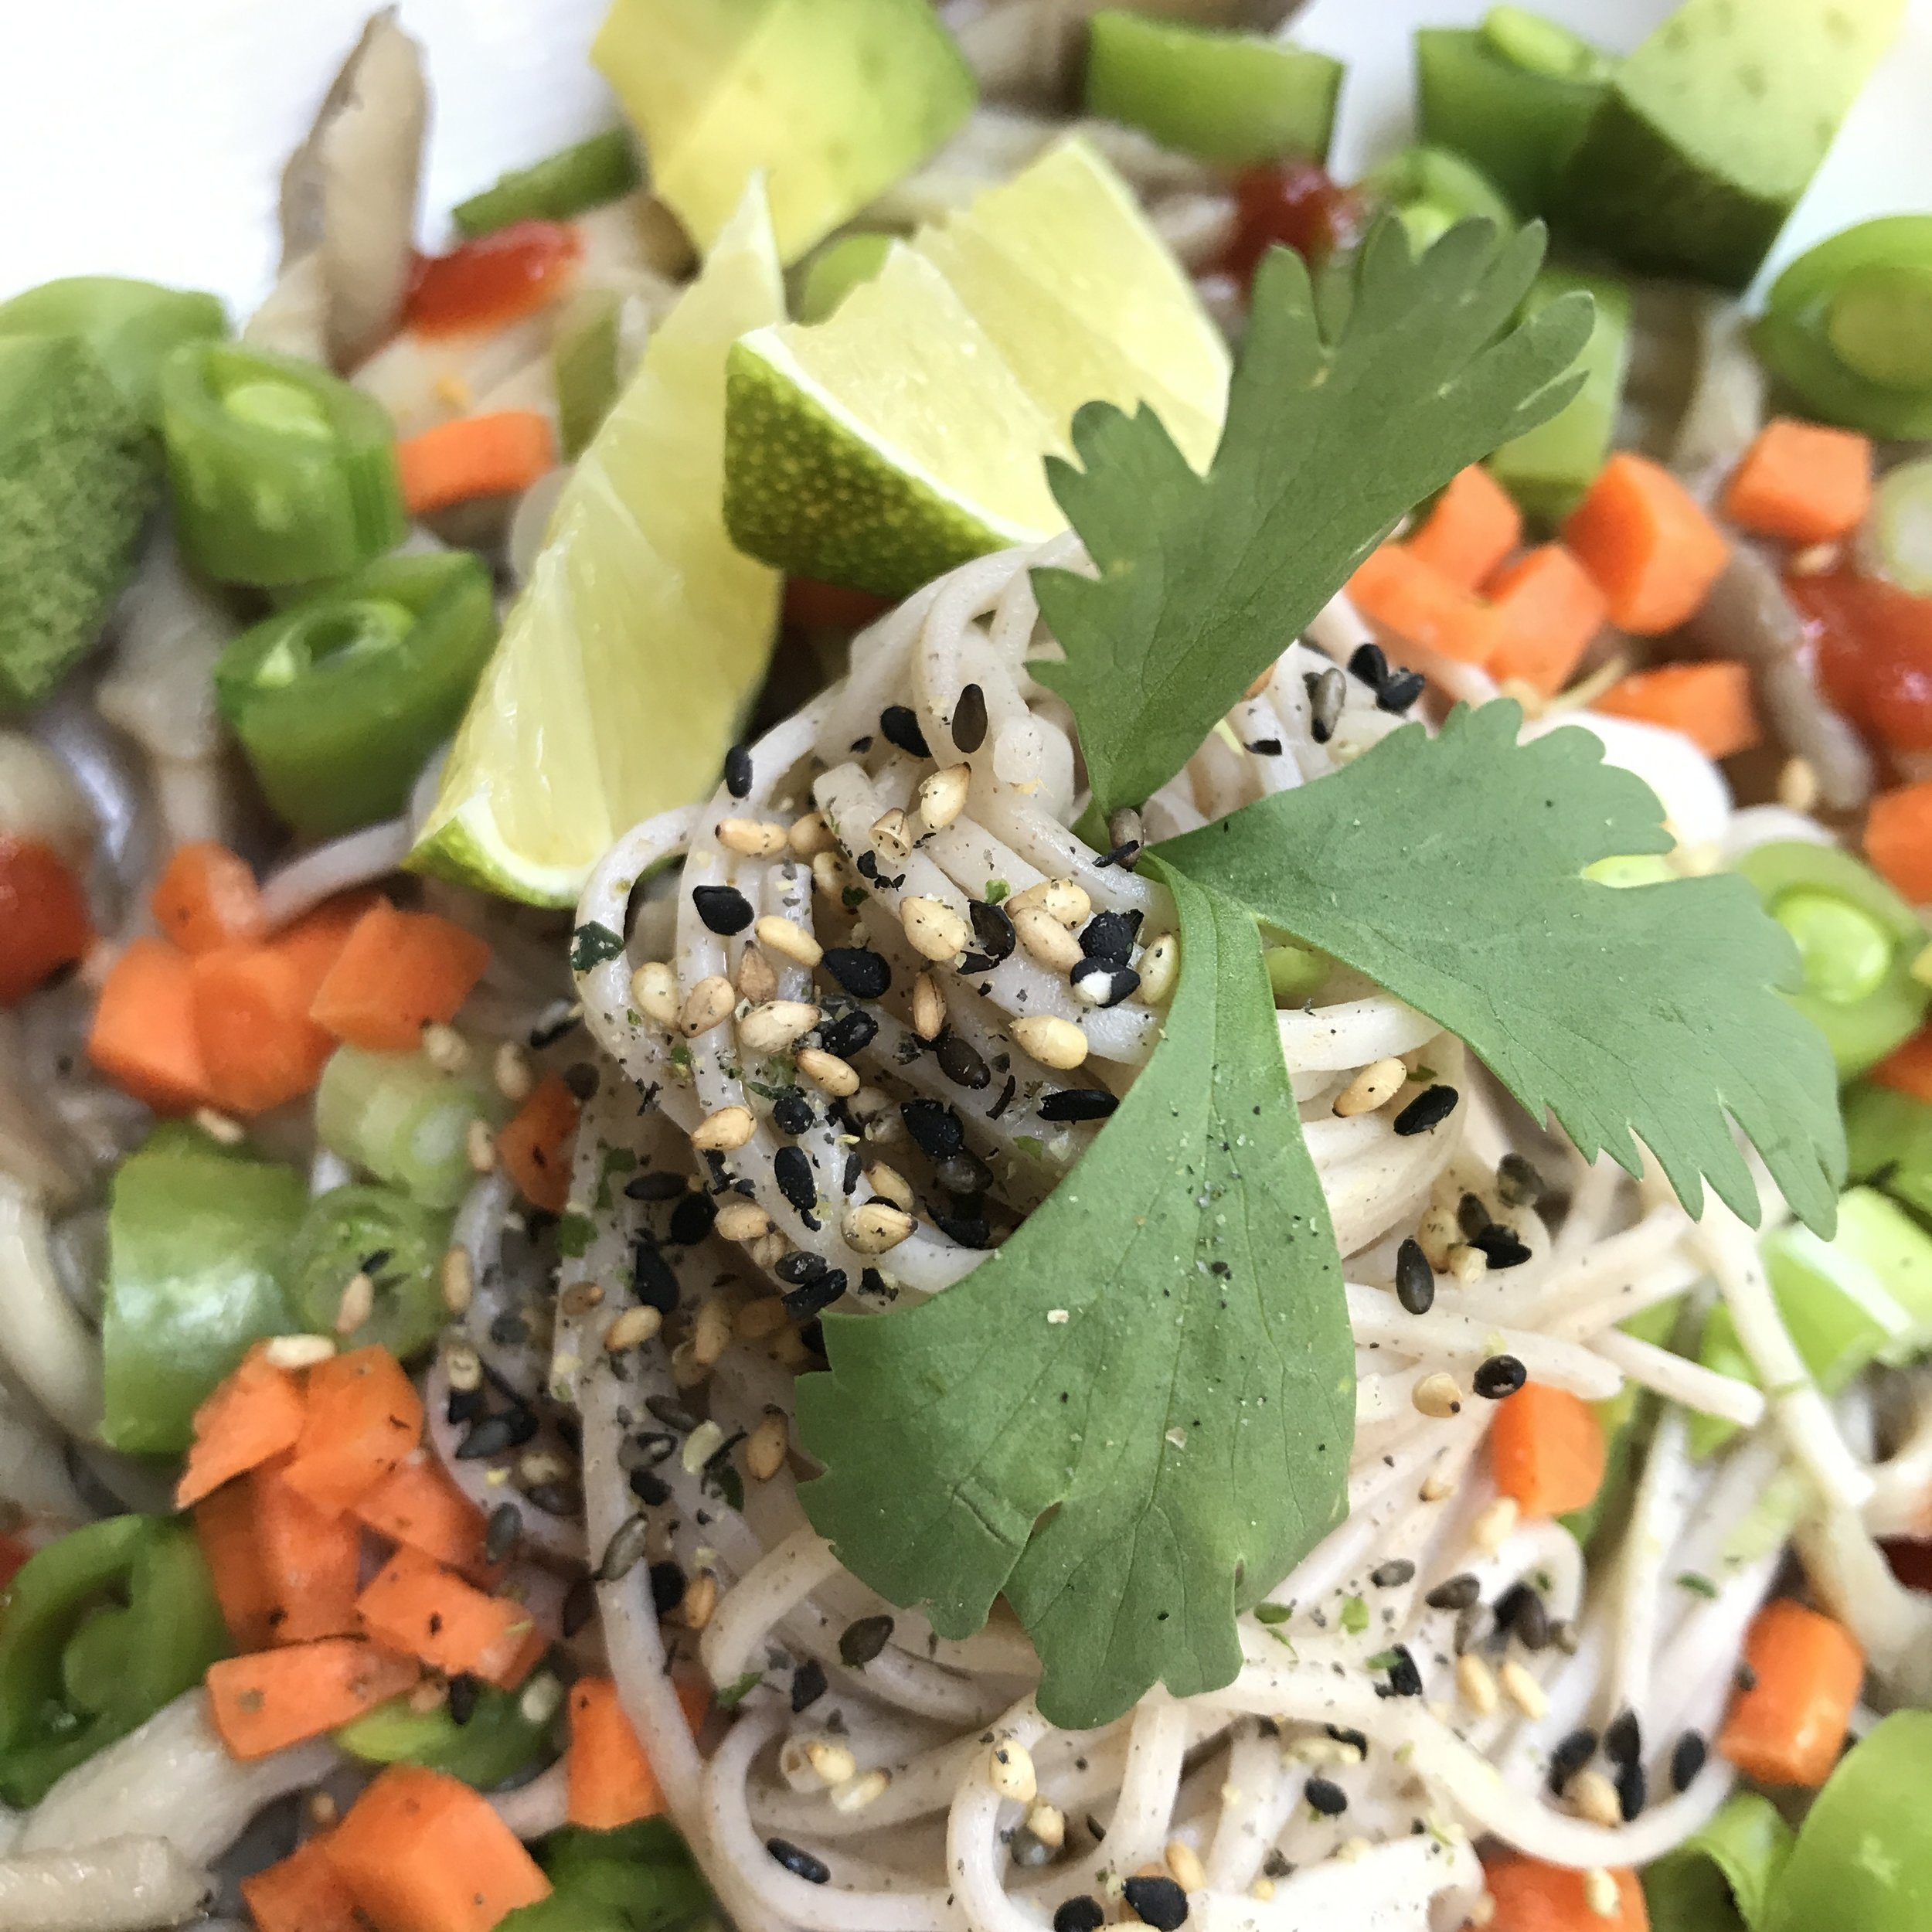 A nice heap of freshly cooked soba noodles topped with fresh diced sugar snap peas, carrots, avocado, green onions and cilantro. A dash of fresh lime juice and extra virgin olive oil and a sprinkle of furikake round out this perfectly balanced plate.        the recipe:    1 package soba noodles (or other noodles of your choosing)  1 cup oyster mushrooms  1/2 cup chopped sugar snap peas  1/4 cup finely chopped carrots  1/4 cup chopped green onions  1/2 ripe avocado, cut into 1 inch cubes  1/2 lime (to juice)  1 tablespoon extra virgin olive oil + extra for sauteing mushrooms   1 tablespoon chopped cilantro  1 teaspoon furikake   salt + pepper   Optional: Sriracha to taste      the plan:    Cook noodles per package instructions. Don't forget to salt the boiling water.  Saute mushrooms with your choice of oil until wilted and soft (I used coconut oil and salt). Chop your vegetables. Pile a spiral of noodles in the center of the plate, arrange mushrooms around the noodles, top with chopped vegetables and sprinkle with lime juice, EVOO, and furikake. Serve at room temperature and enjoy!   You can easily make this a heartier meal by subbing other proteins of your choice.